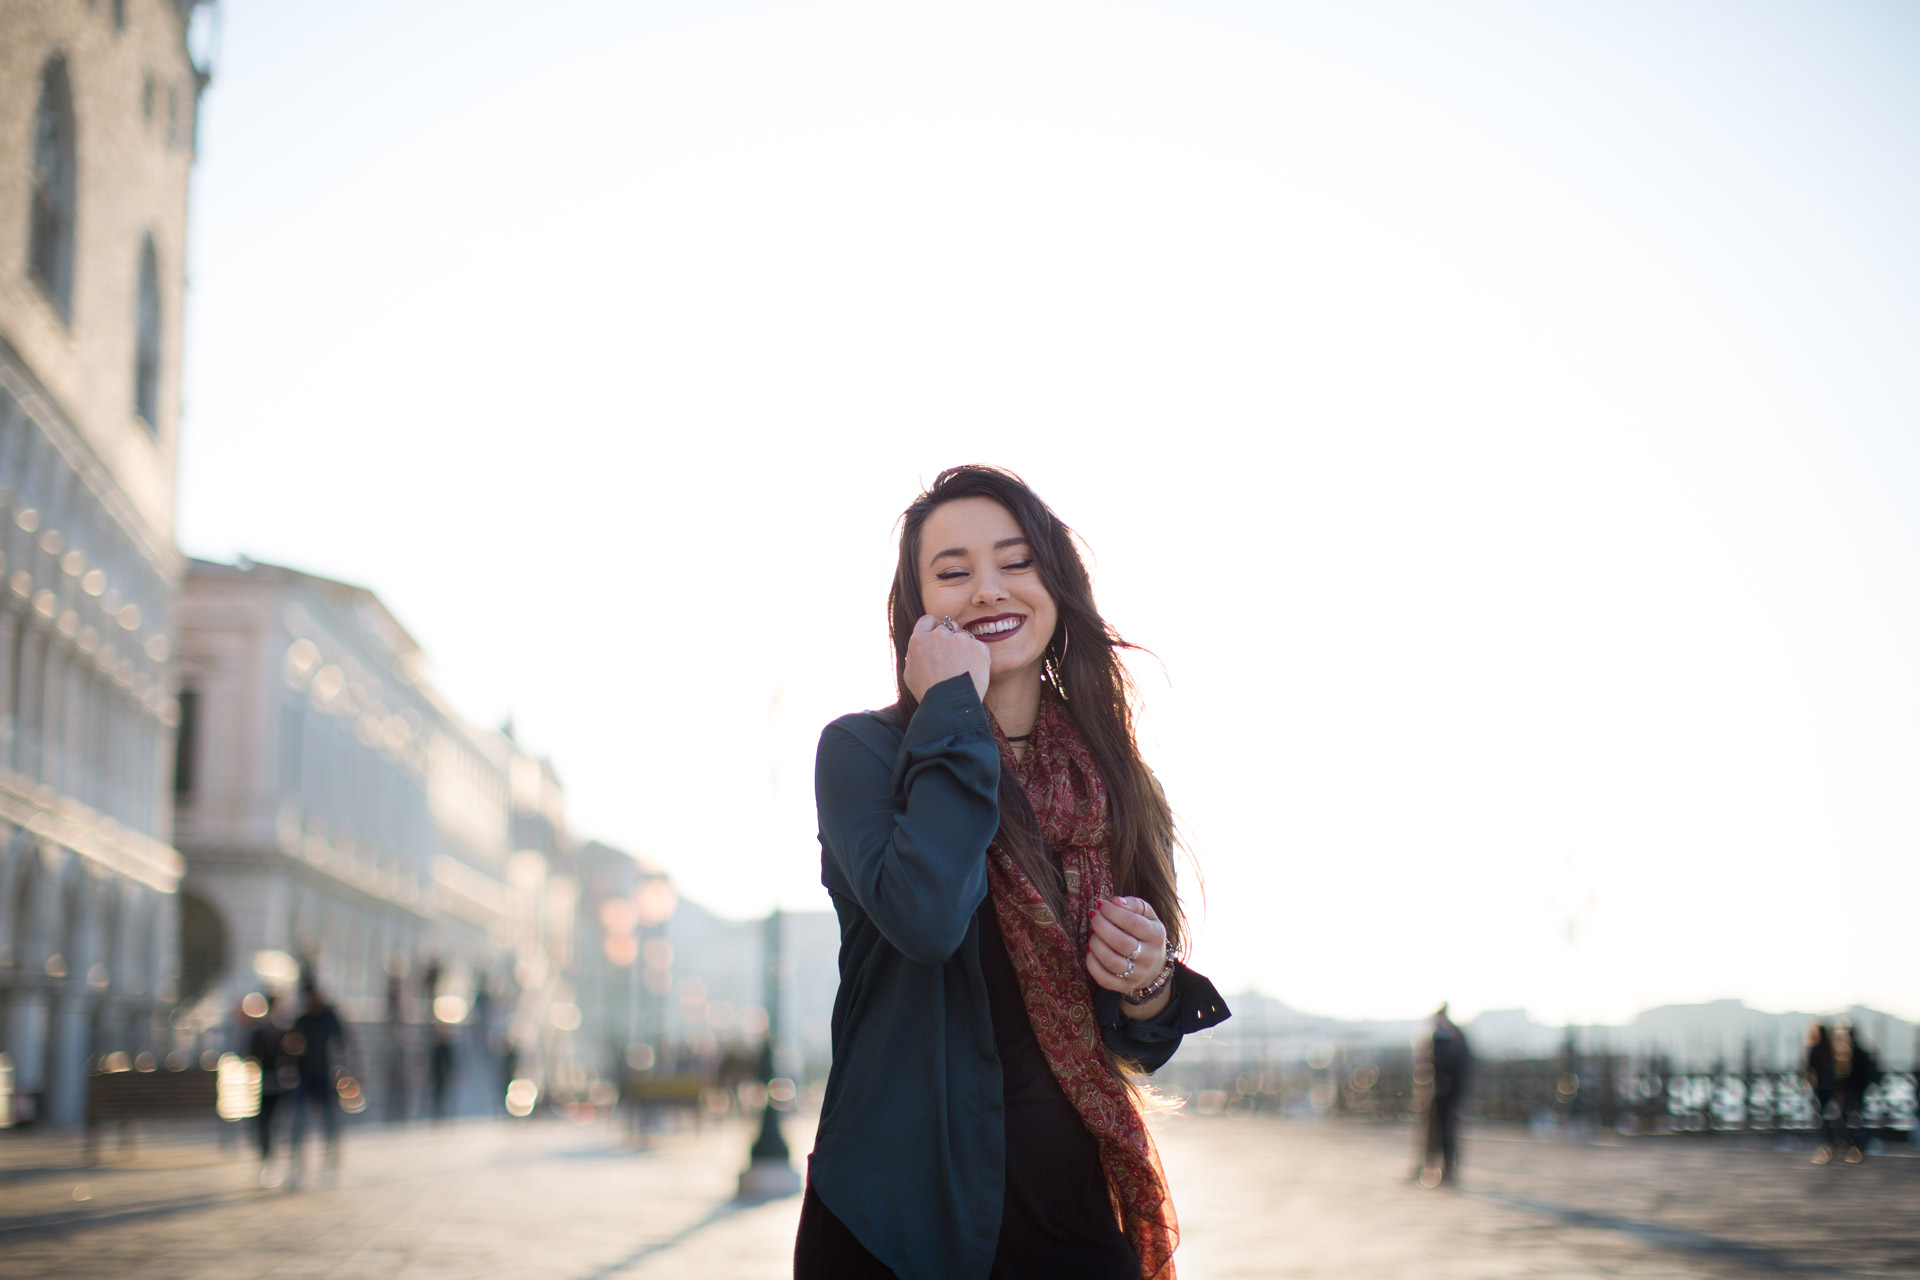 Meagan-portrait-photo-shooting-sunrise-palazzo-ducale-Venezia-Venice-2